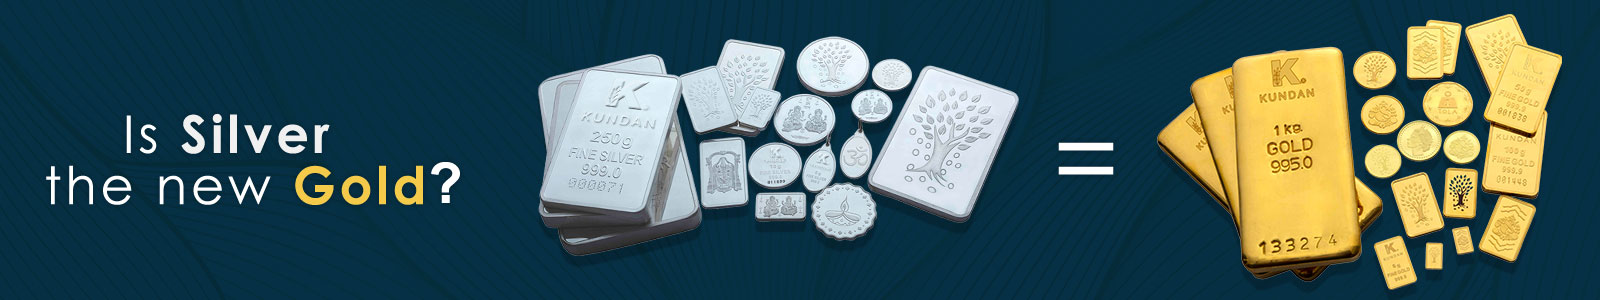 Is Silver The New Gold?